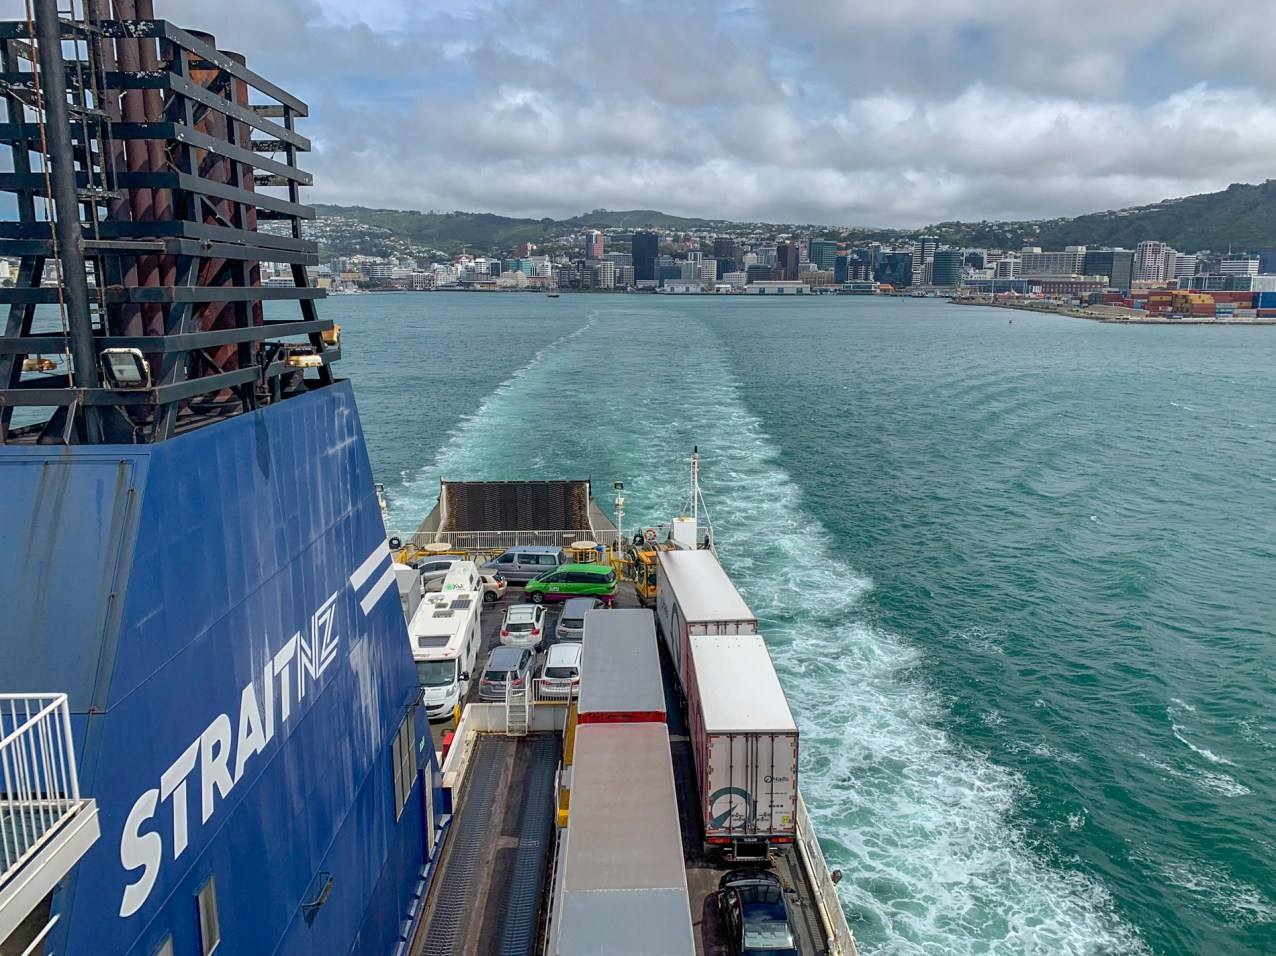 On board the Interislander Ferry, looking towards the stern of the ship. Downtown Wellington is visible in the distance.